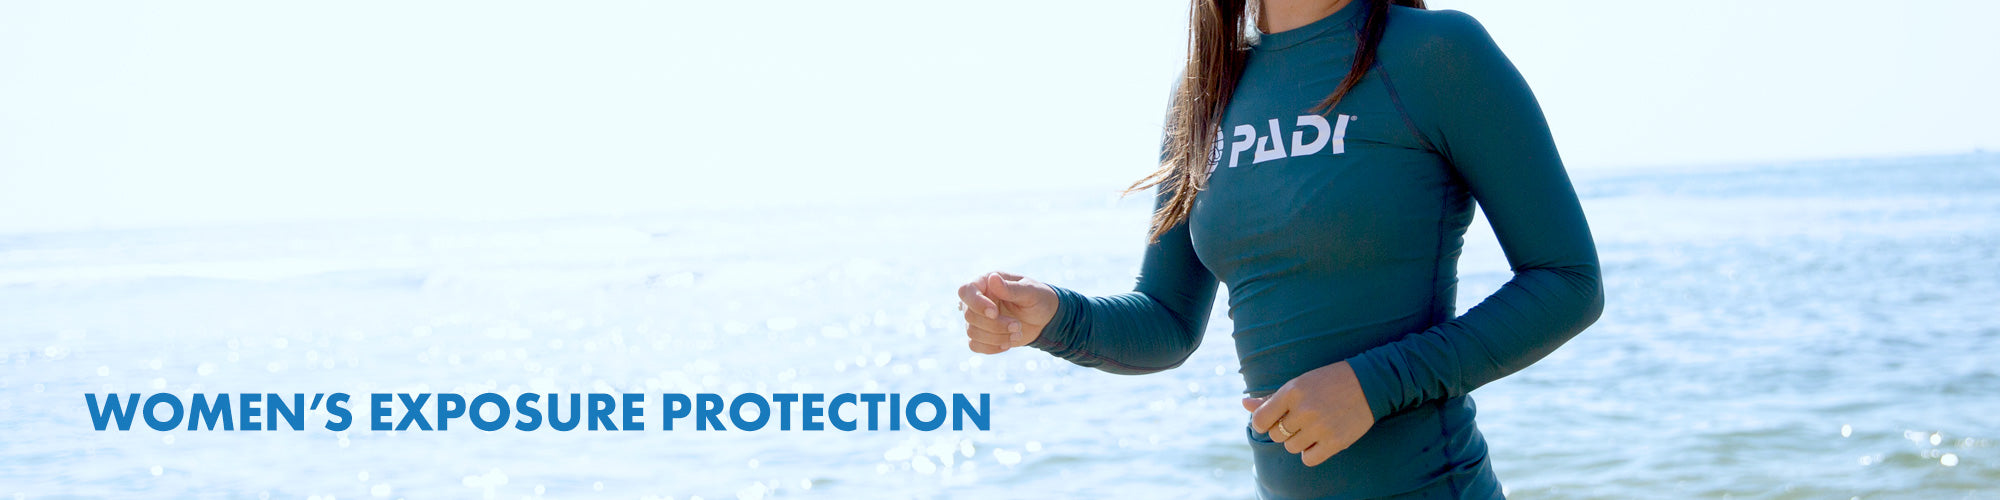 Women's exposure protection collection page.